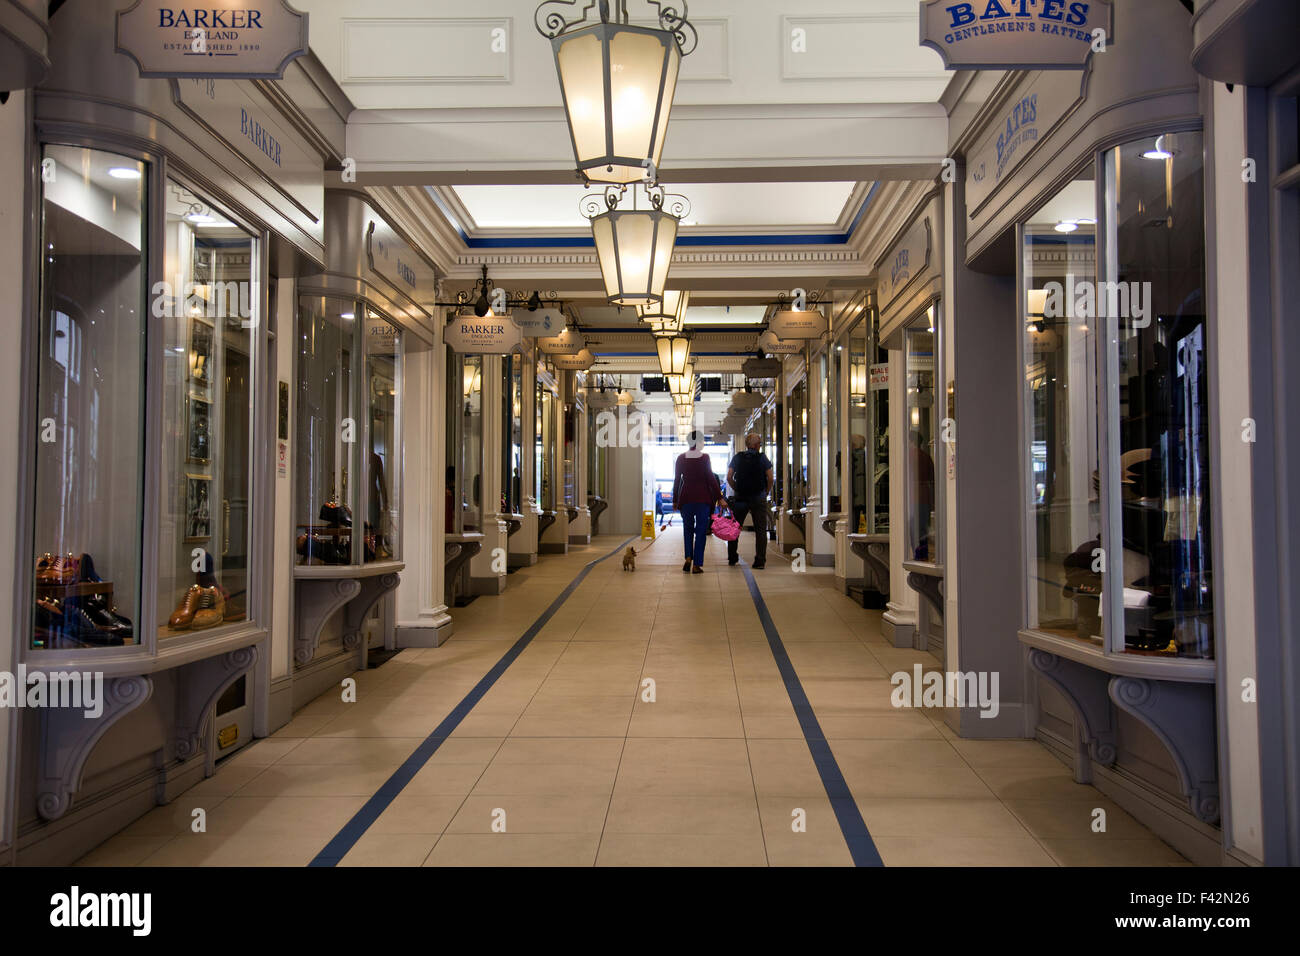 Princes Arcade Boutique Shopping Centre in Piccadilly - London UK - Stock Image